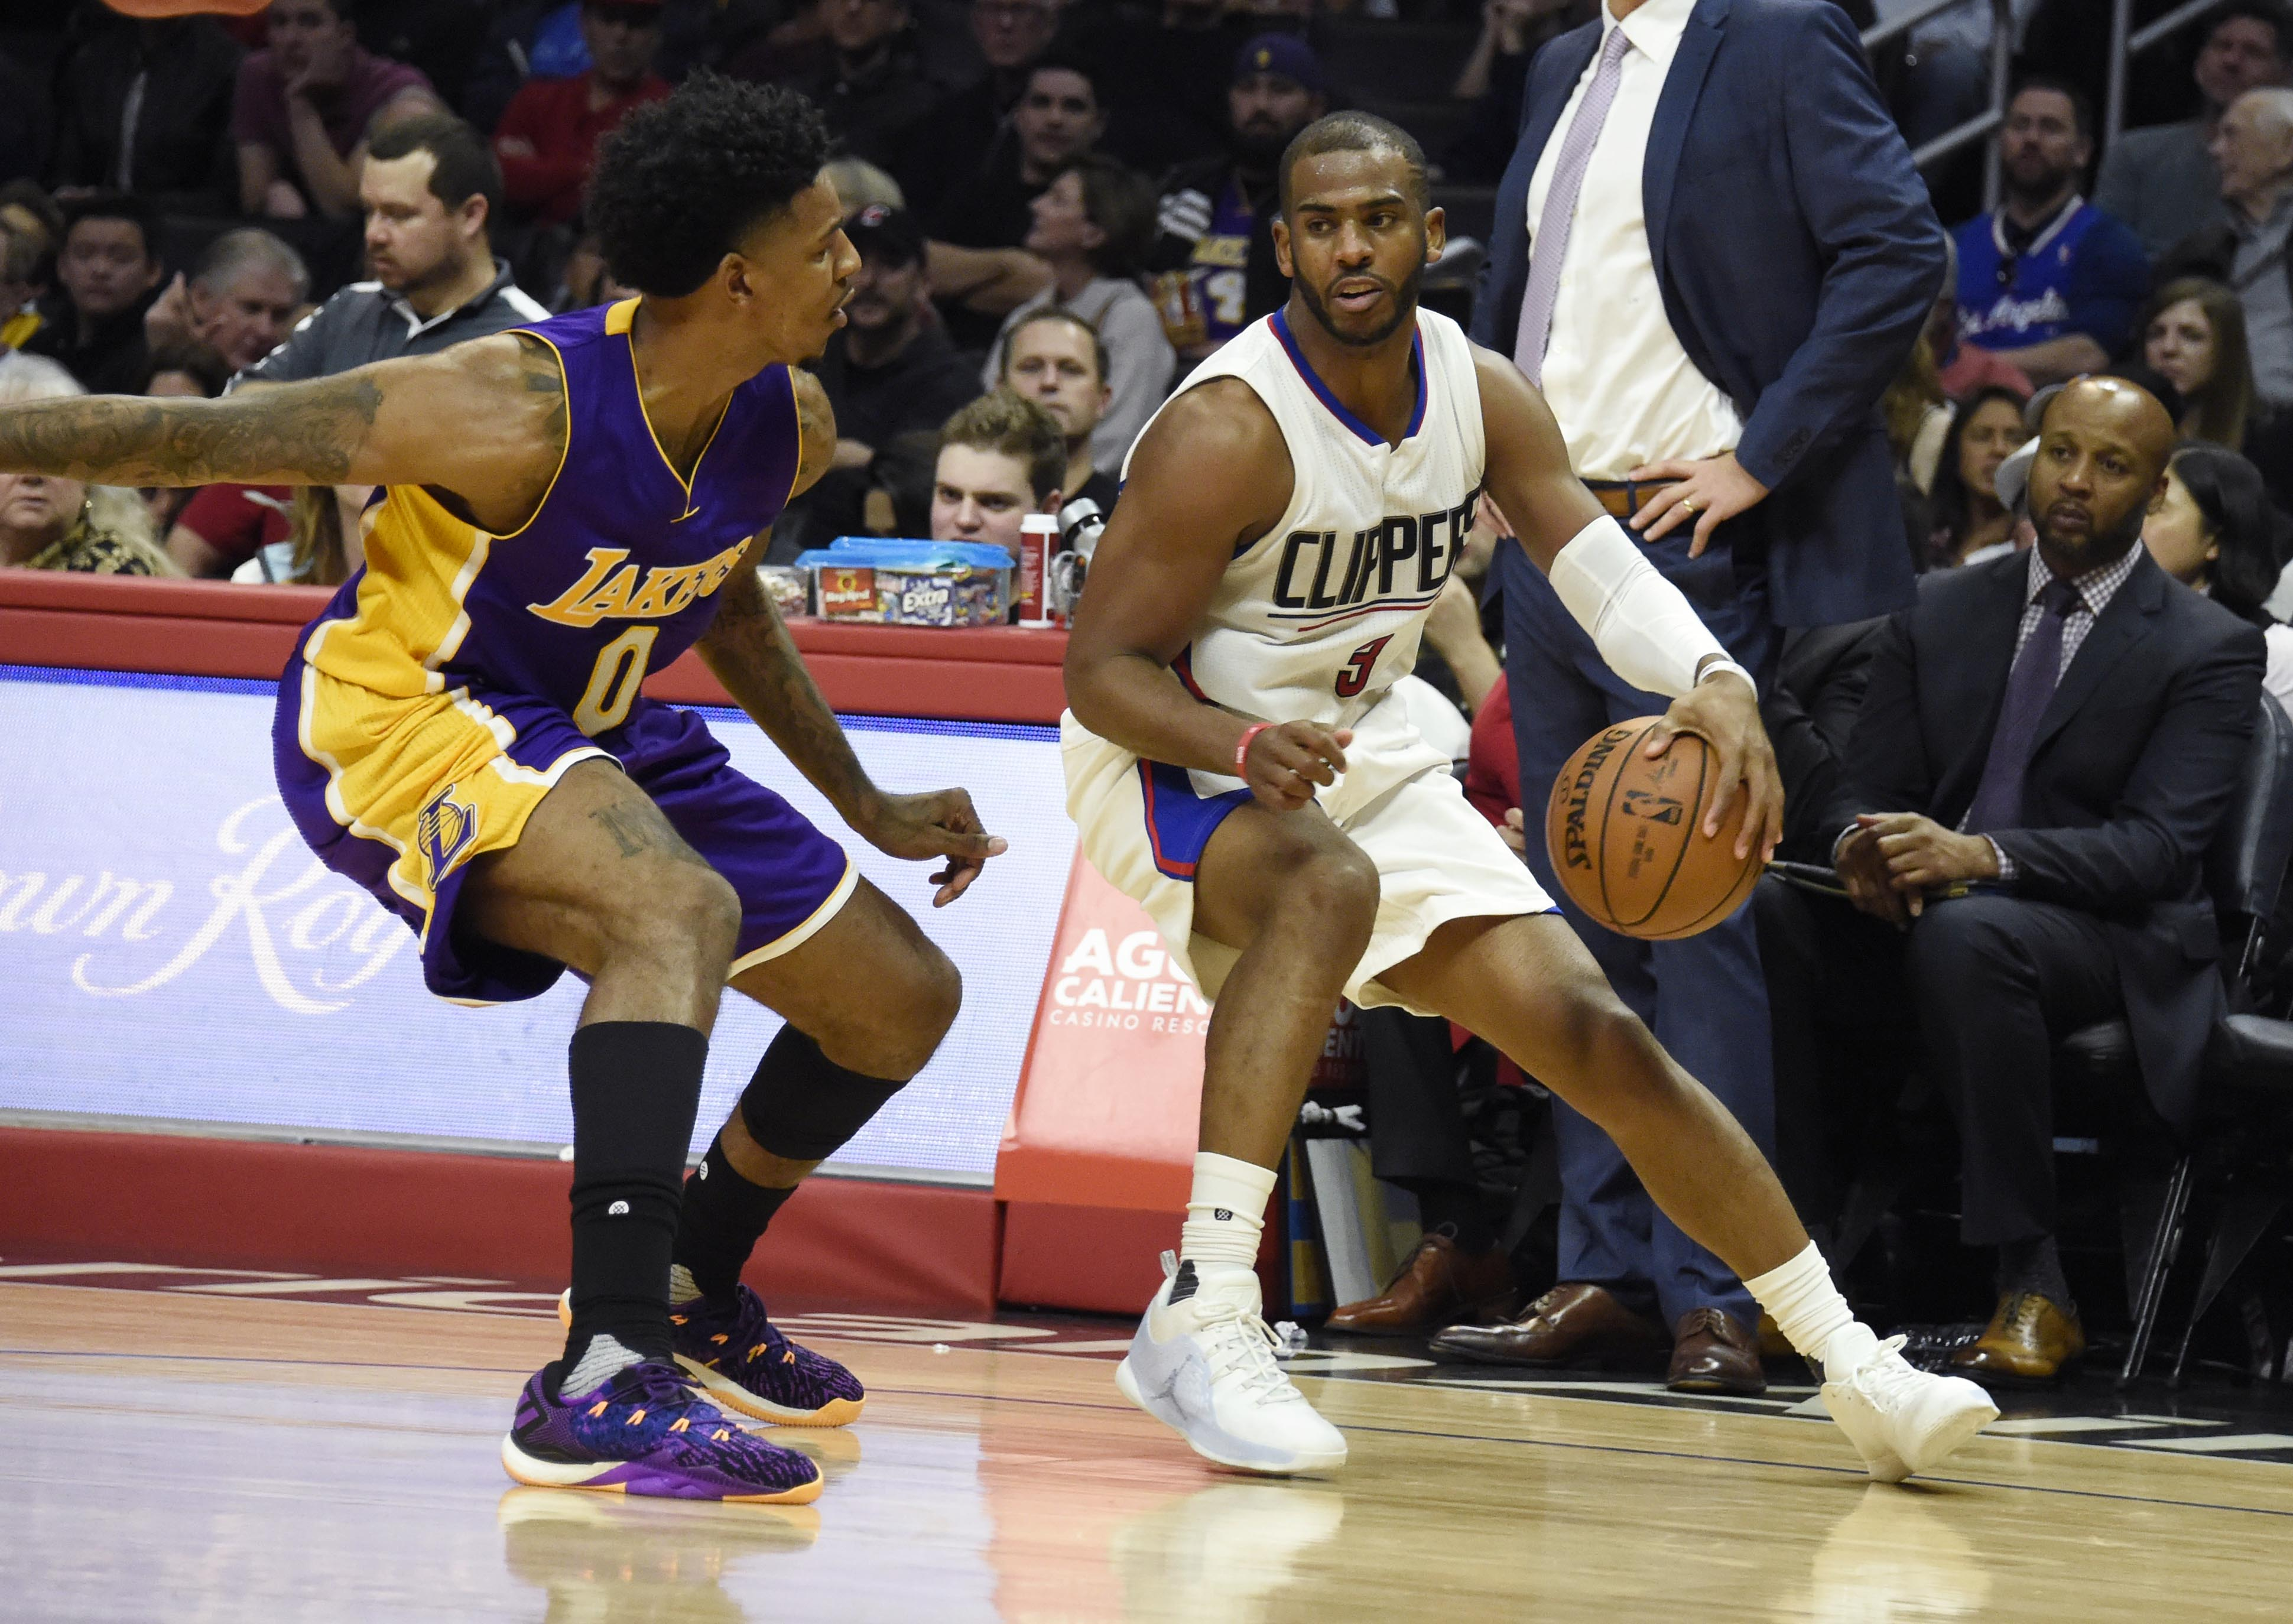 9809933-nba-los-angeles-lakers-at-los-angeles-clippers